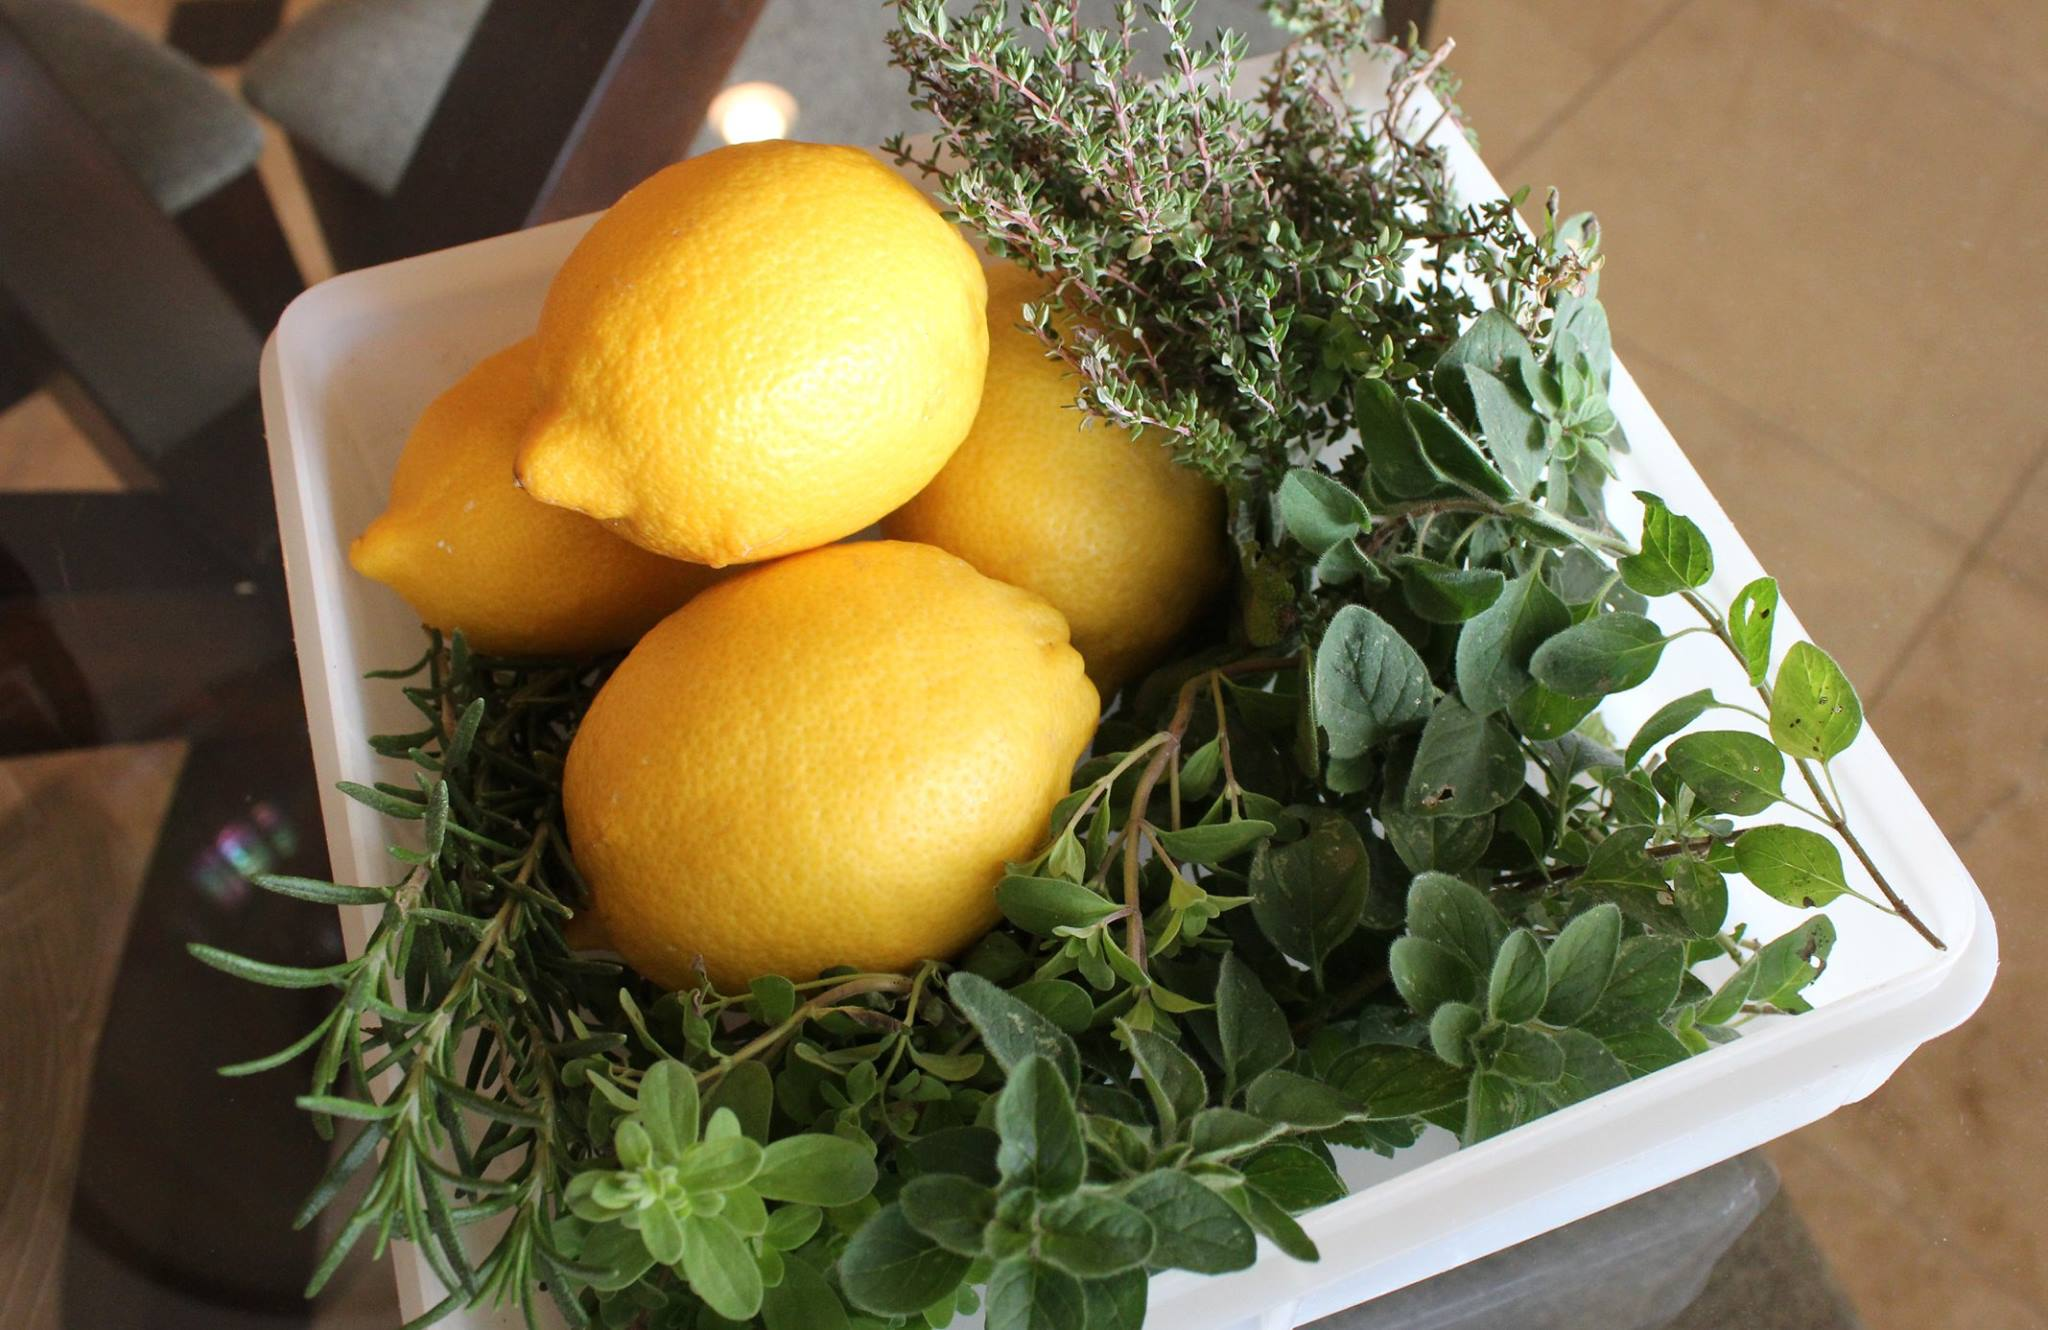 Lemons, thyme, oregano, rosemary and marjoram from the garden.